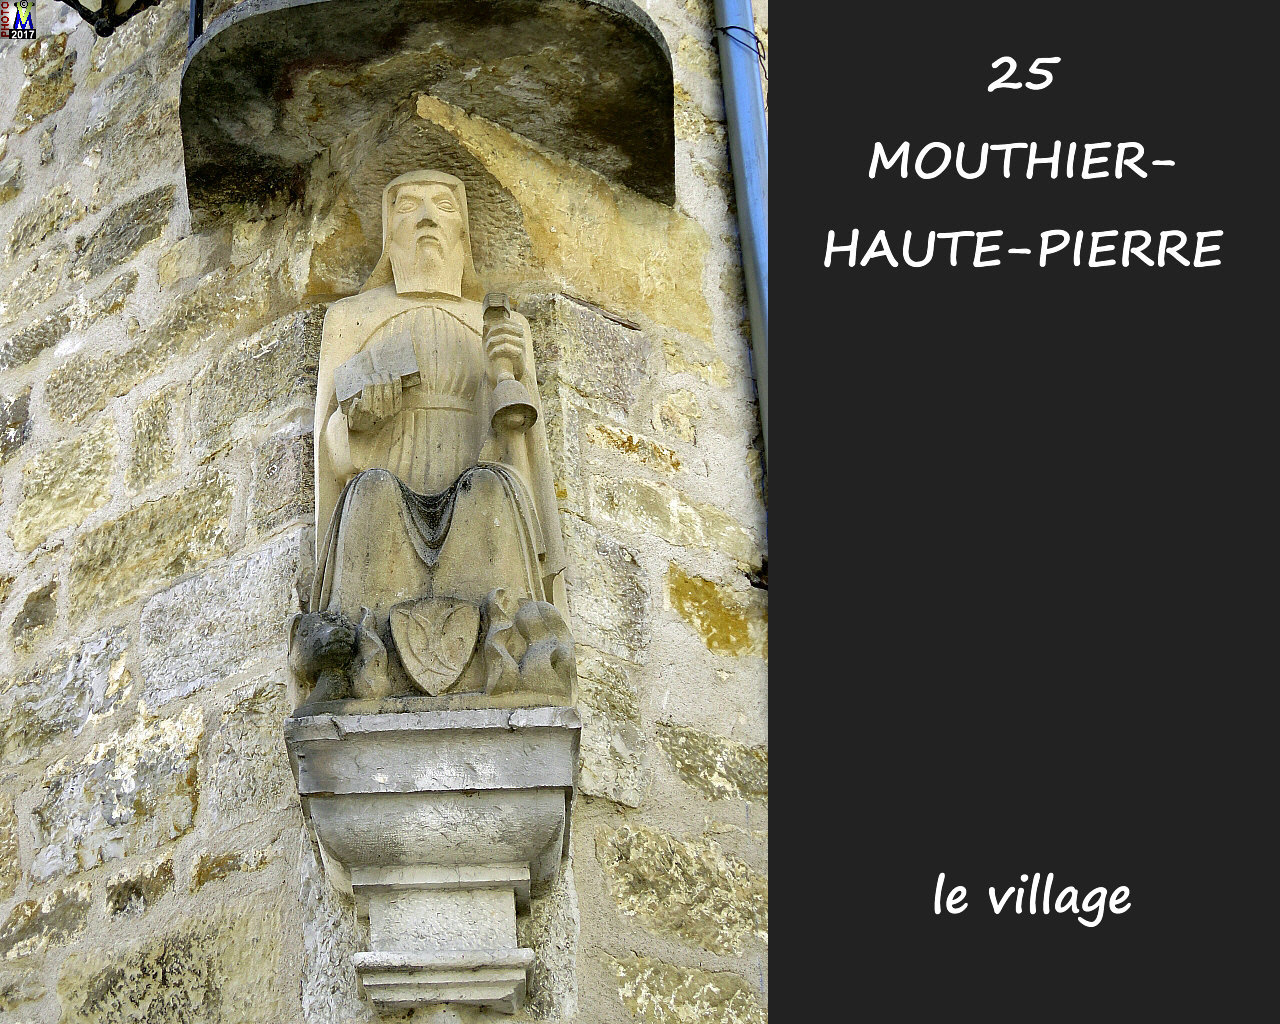 25MOUTHIER-HAUTE-PIERRE_village_134.JPG